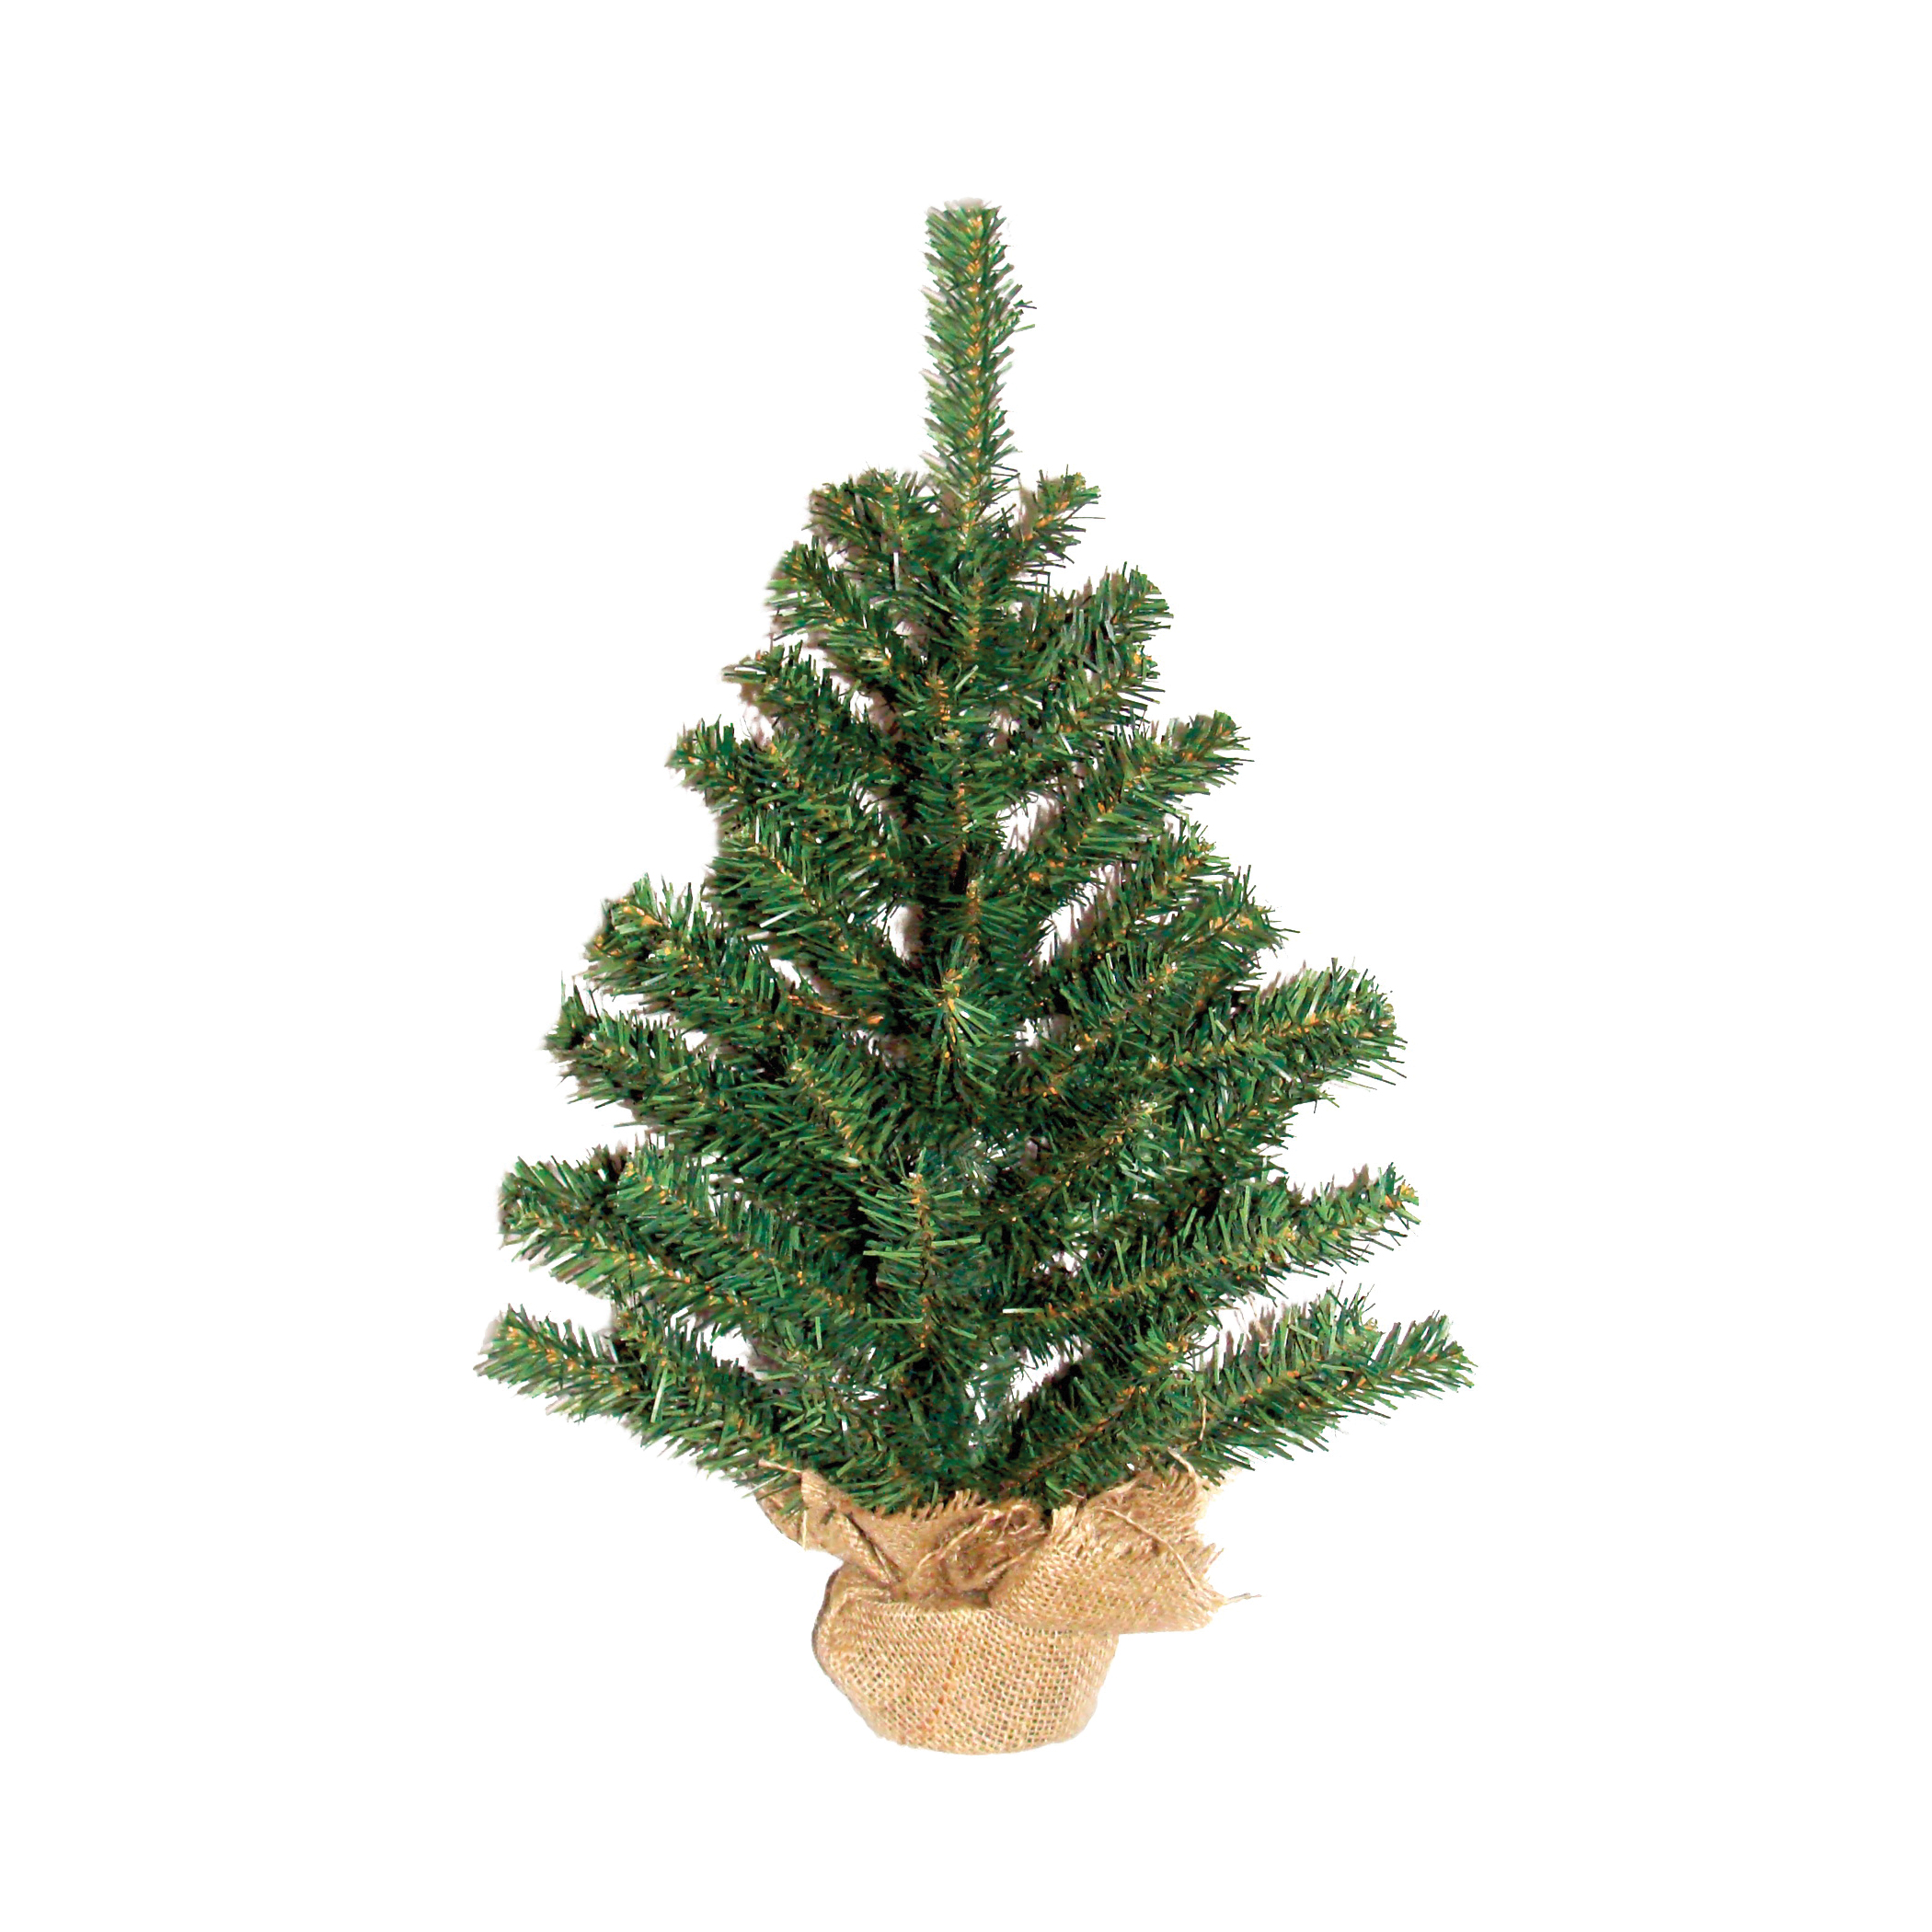 Picture of Santas Forest 11112 Ball and Burlap Tree, 12 in H, Tree, PVC & Burlap, Indoor/Outdoor